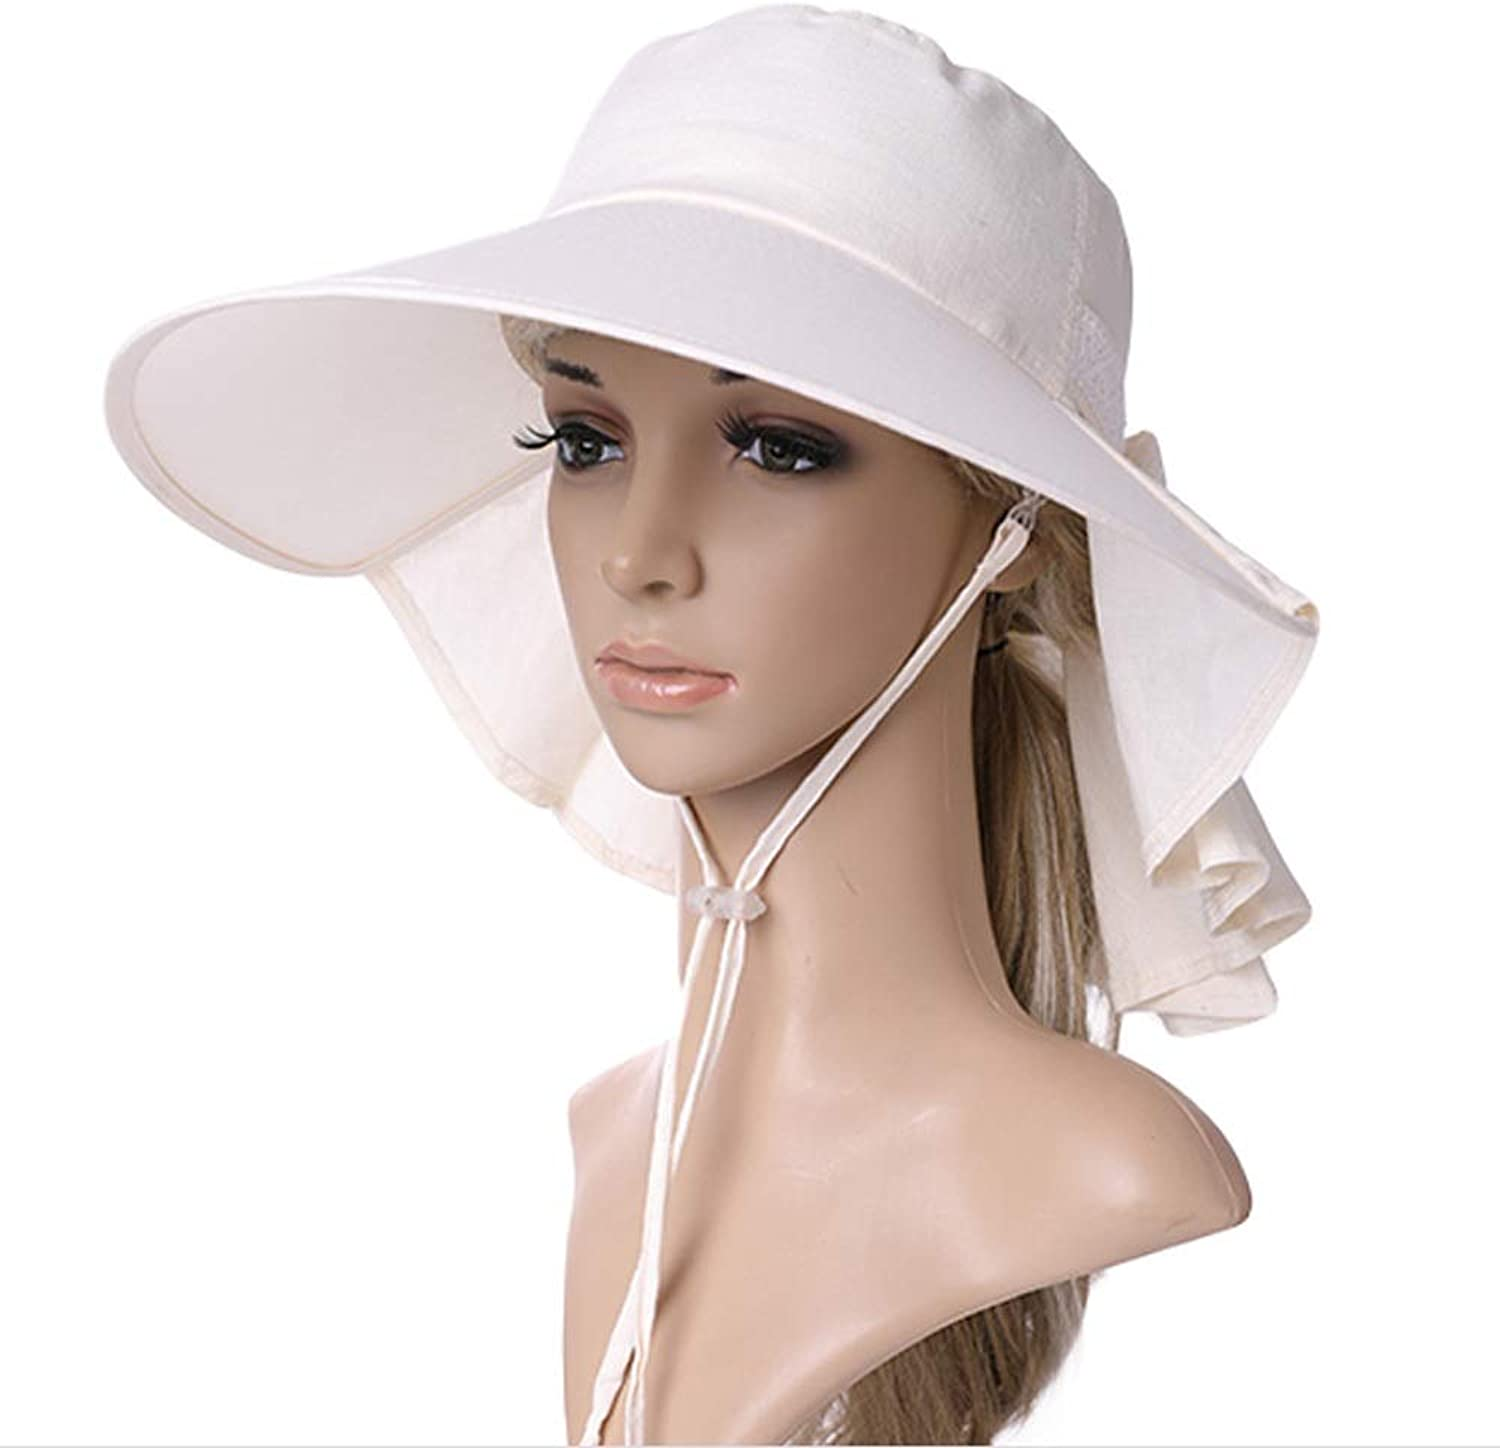 YD Hat  Women's Summer UV Predection Sun Hat Facial Neck Predection Sun Predection Cap Multifunction Outdoor Activity Sun Hat (3 colors)    (color    3)